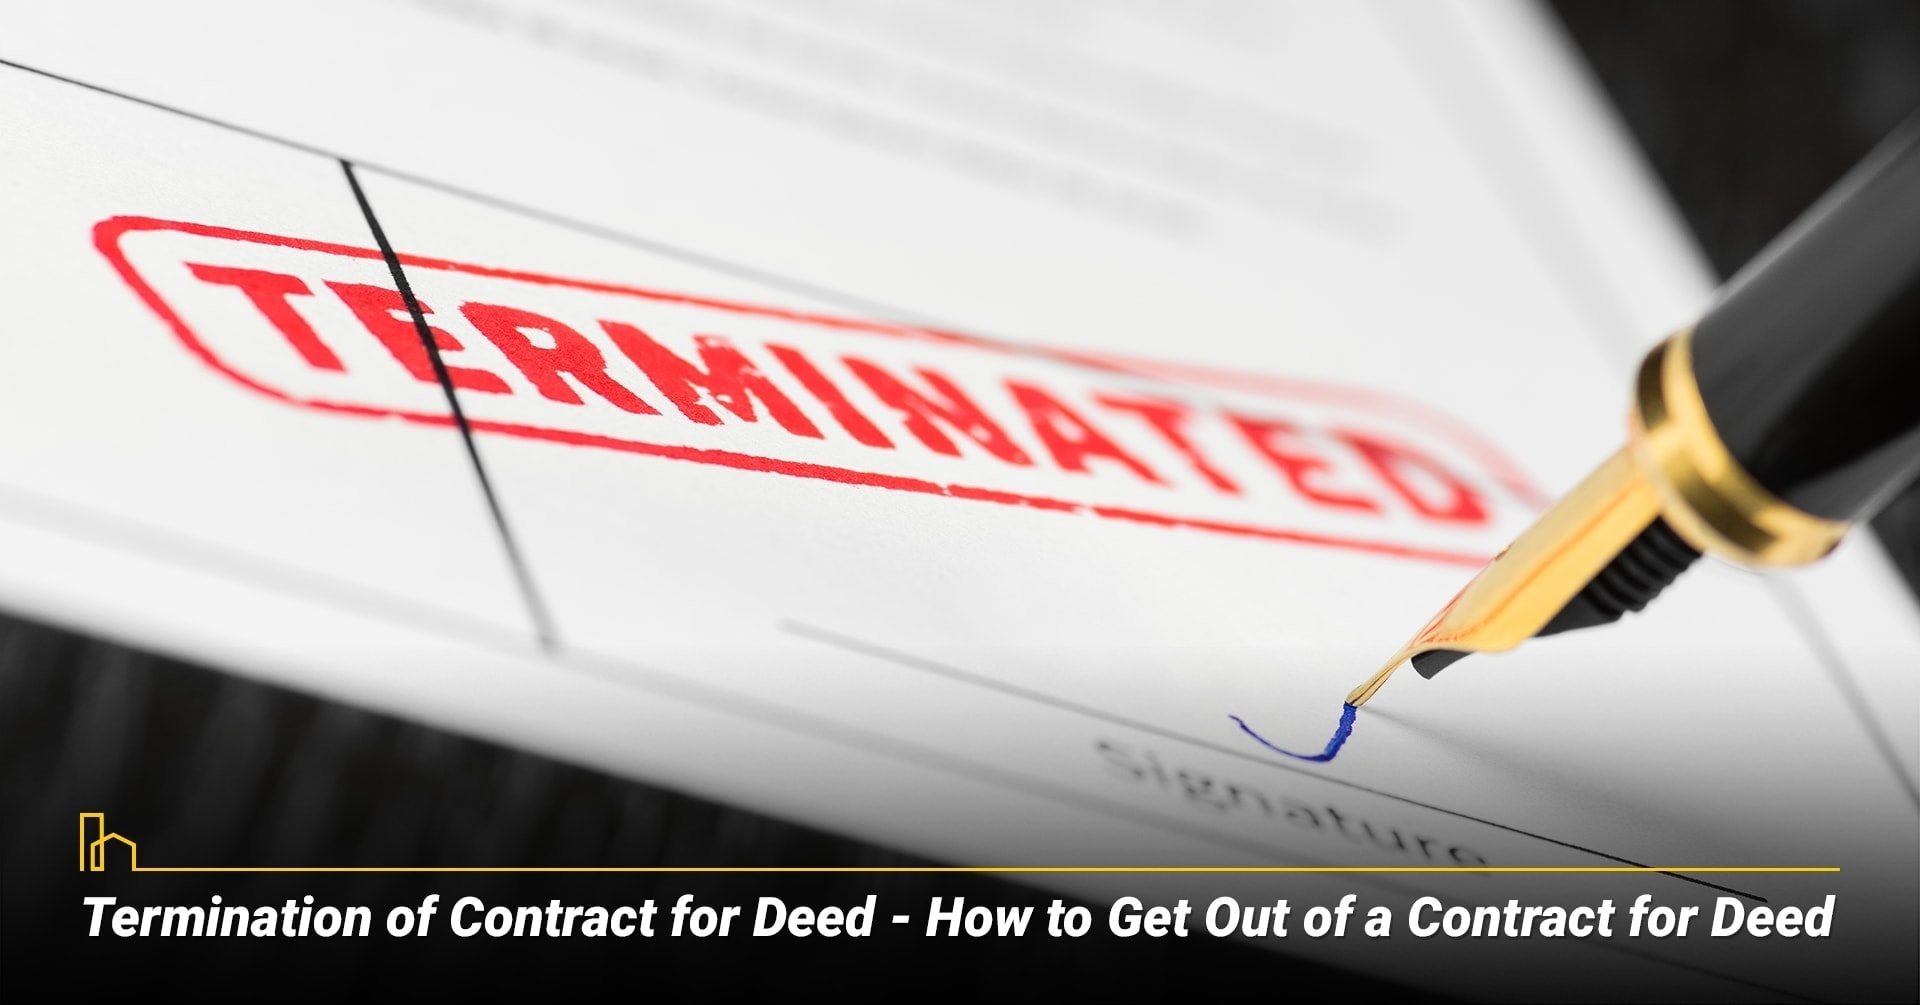 Termination of Contract for Deed–How to Get Out of a Contract for Deed, ending a Contract for Deed